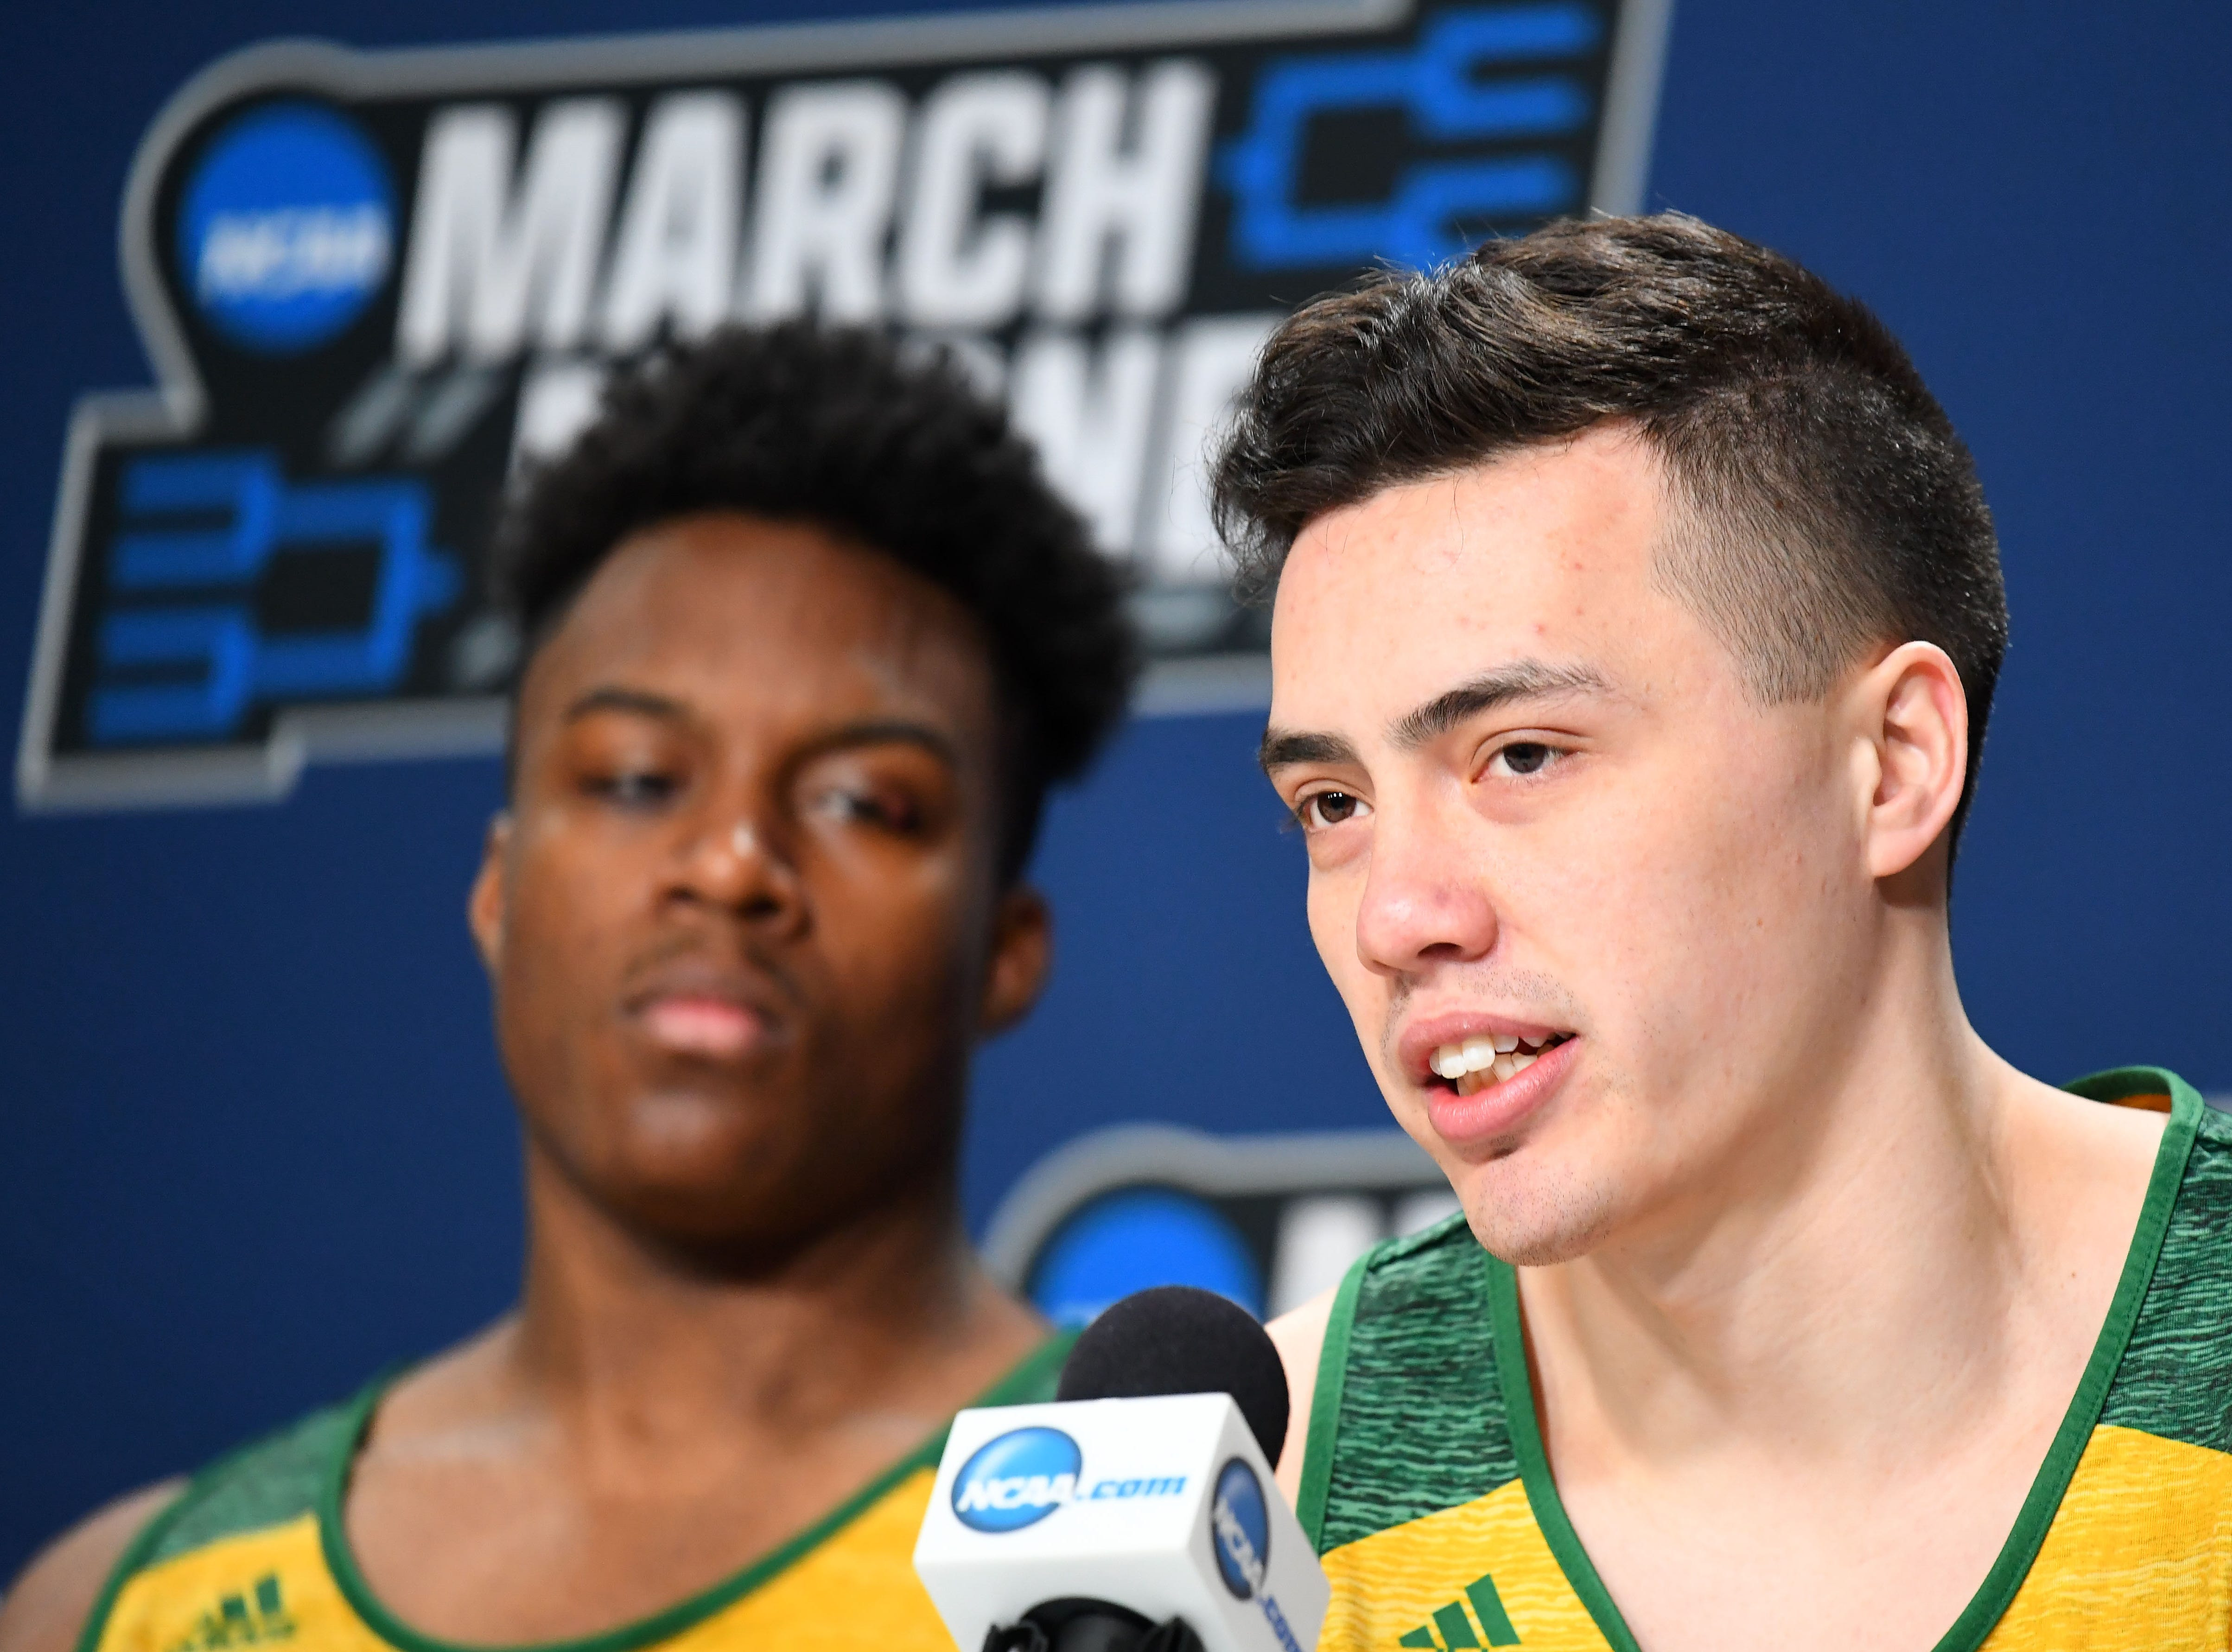 Mar 20, 2019; Hartford, CT, USA; Vermont Catamounts guard Ernie Duncan (20) speaks with the media before a practice in the first round of the 2019 NCAA Tournament at XL Center. Mandatory Credit: Robert Deutsch-USA TODAY Sports